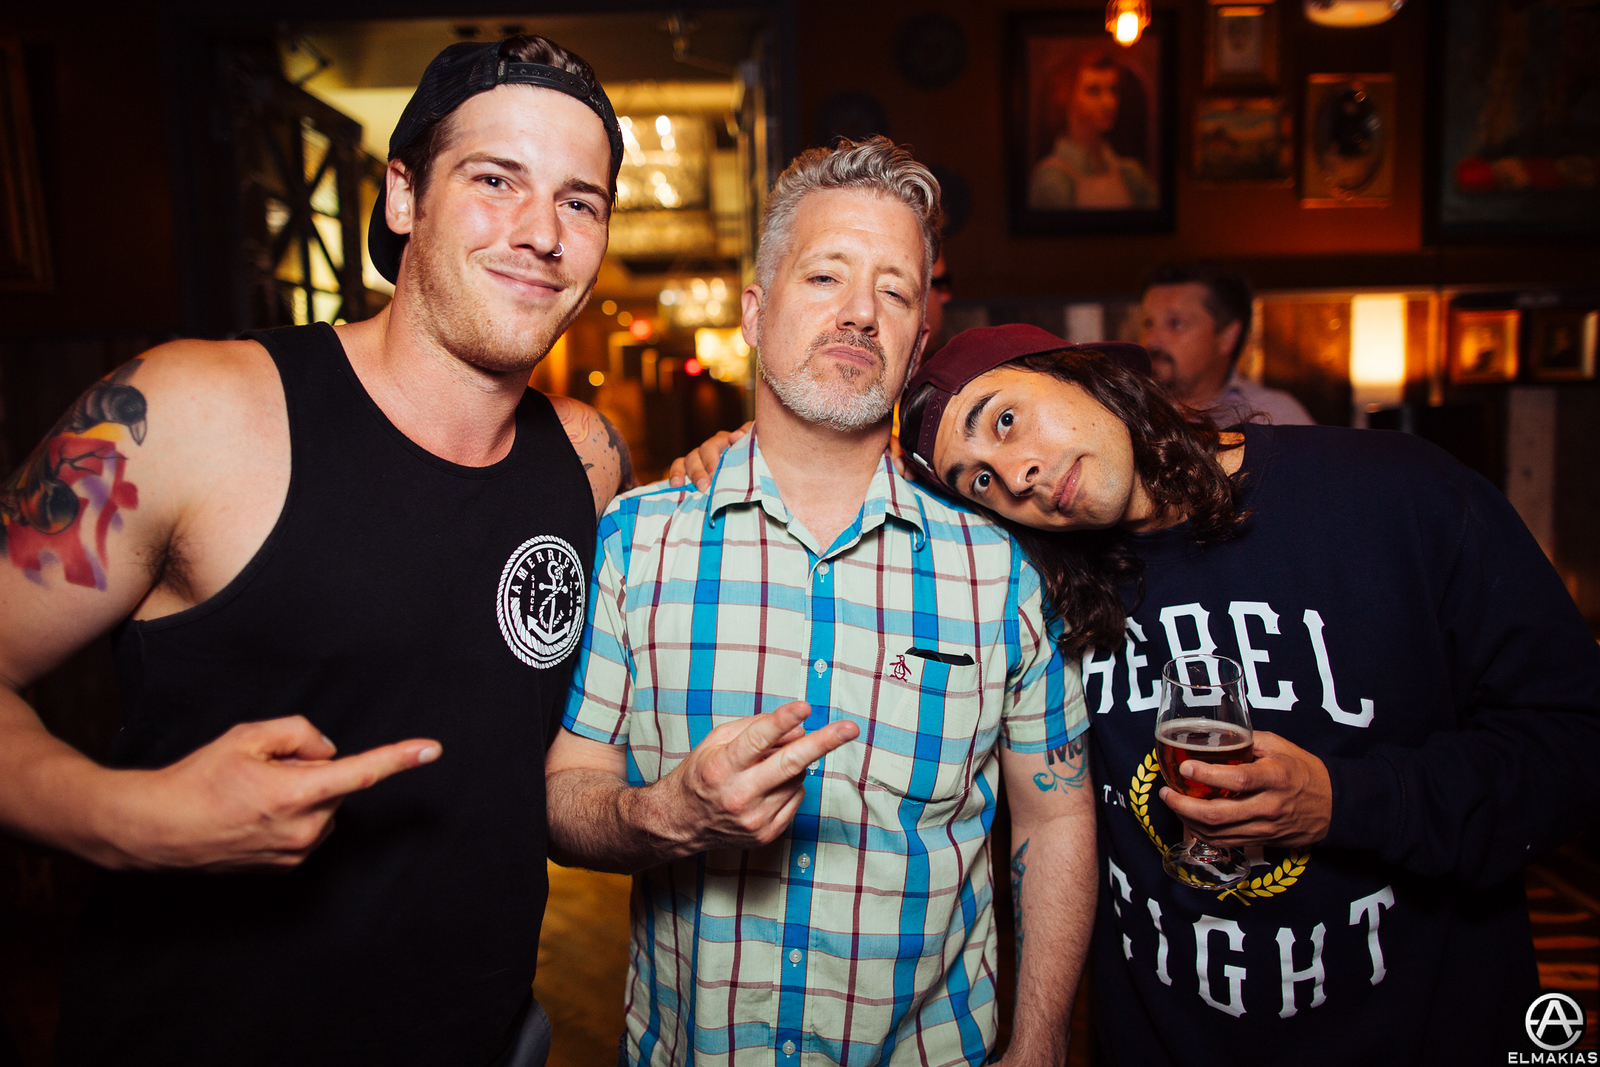 Zack, Mike, and VIc